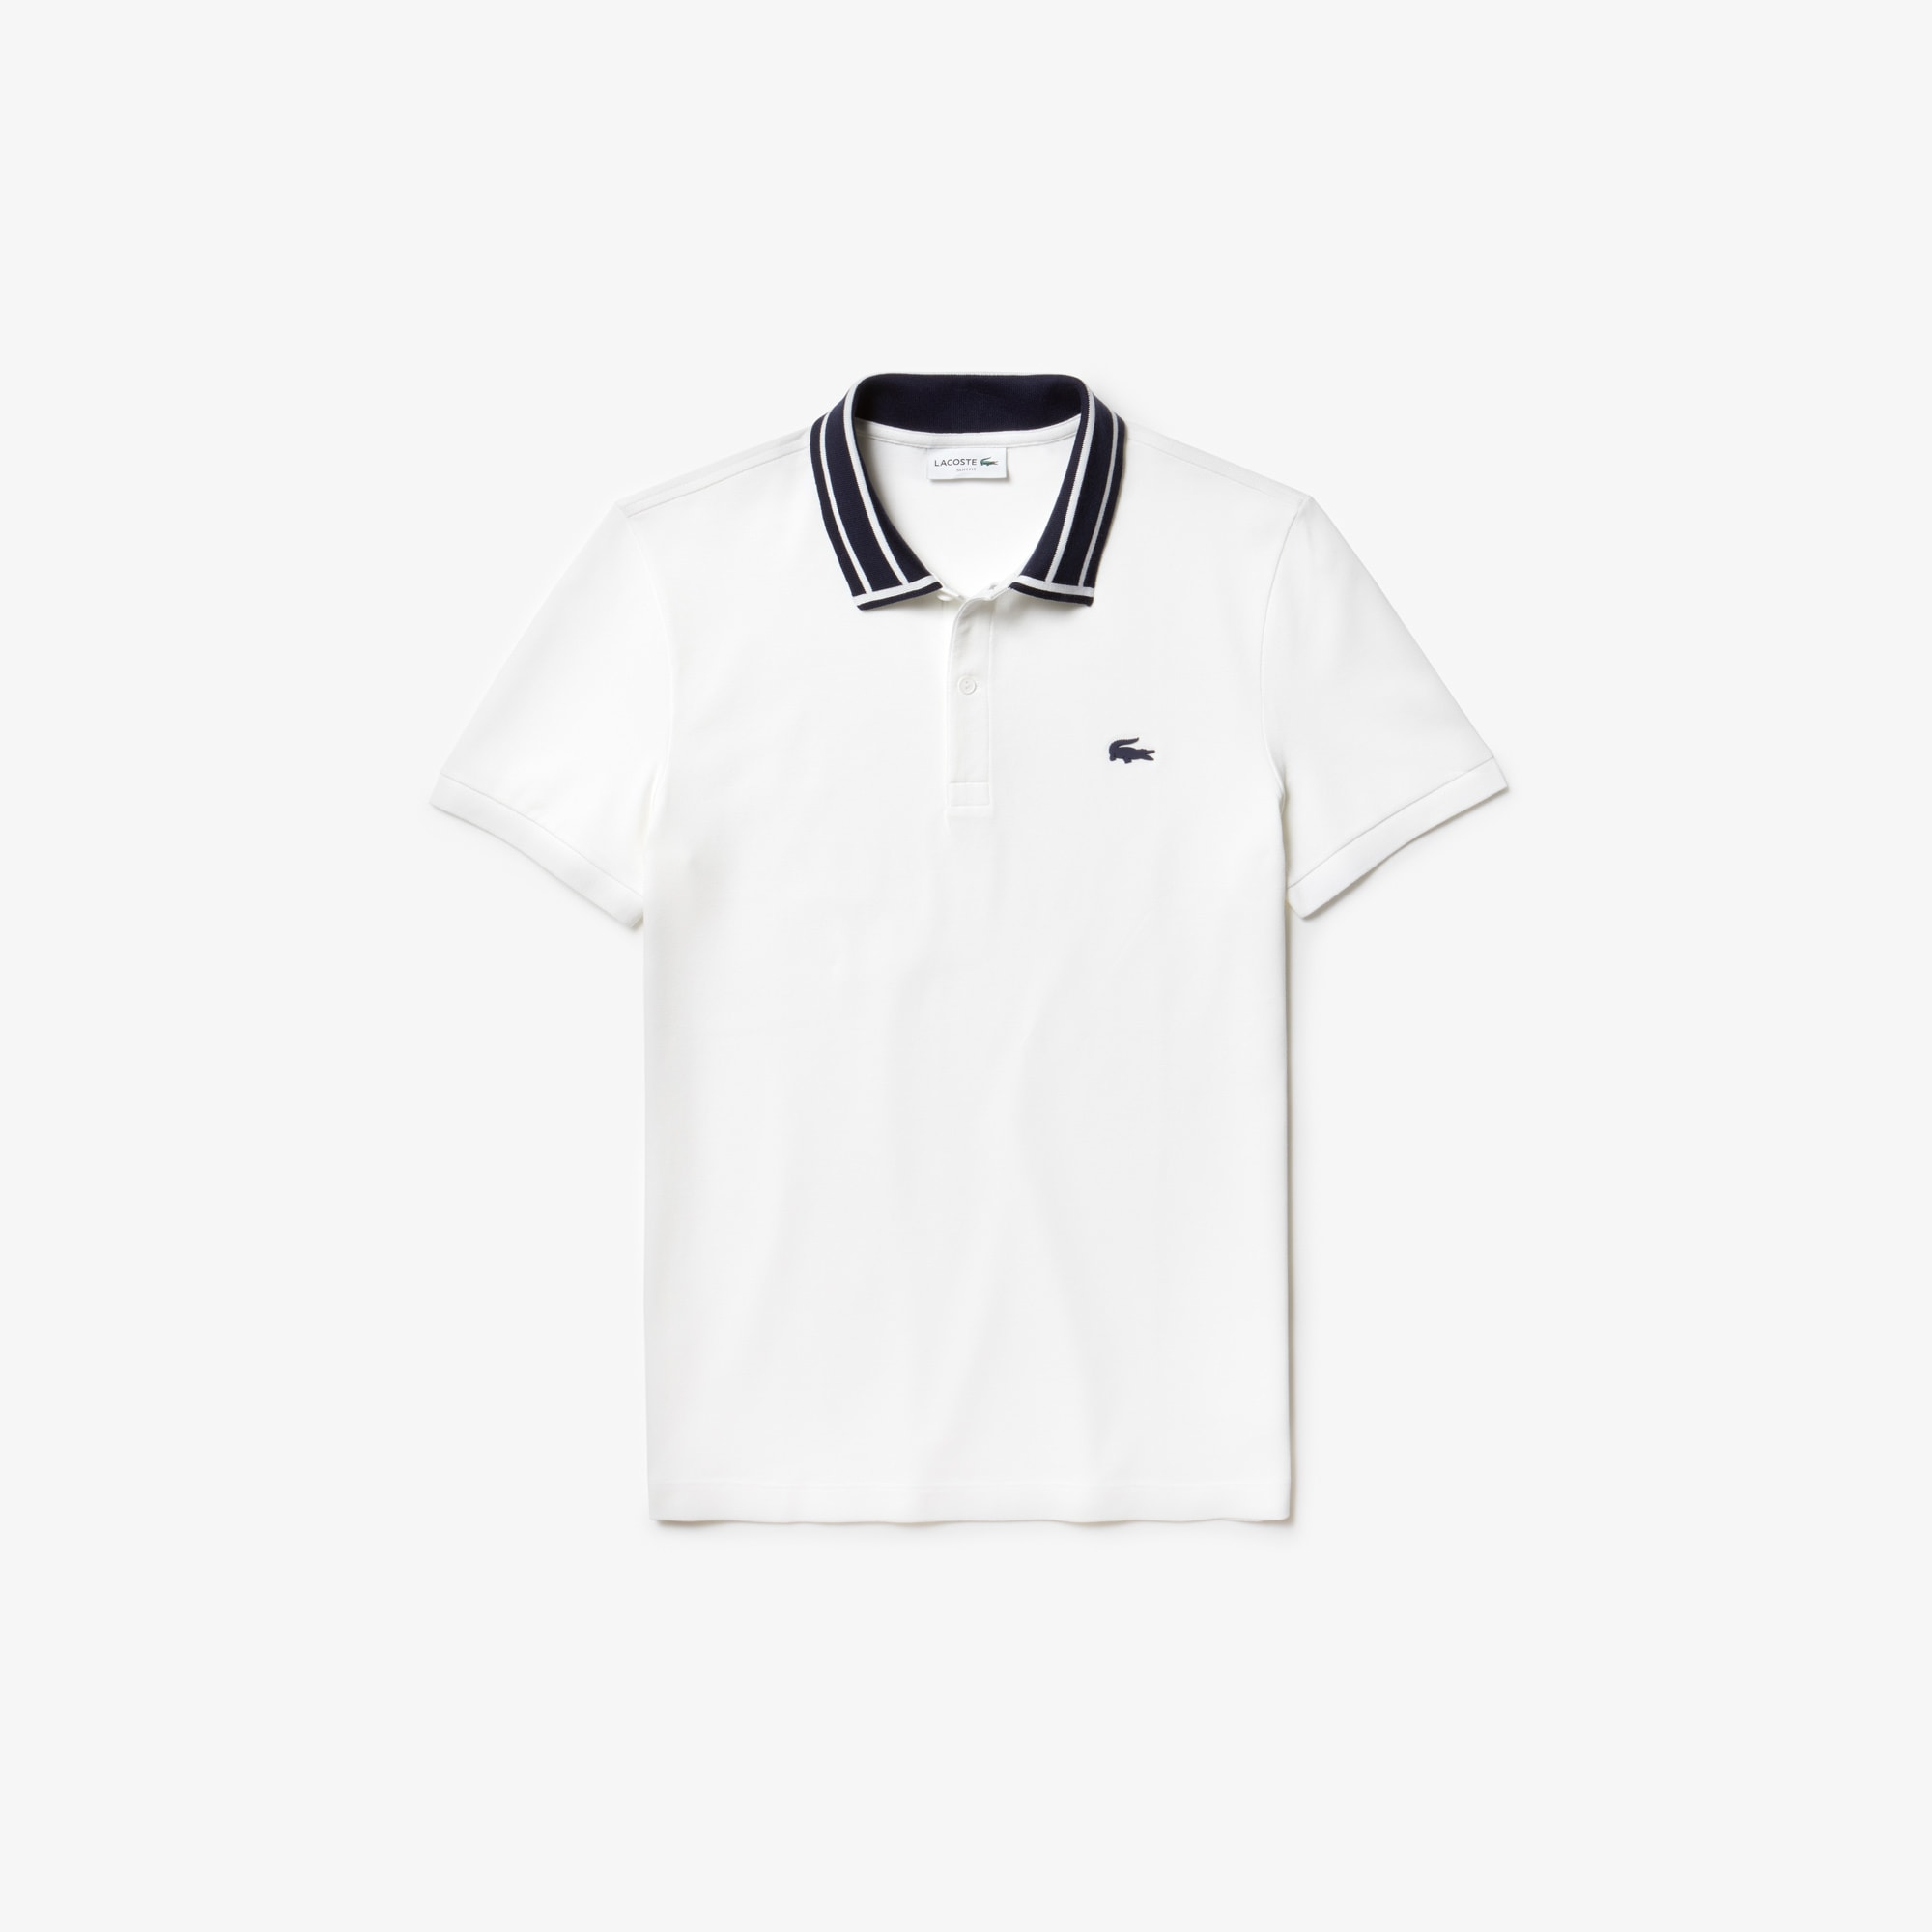 c5073b6b1c2d Men's Slim Fit Stretch Cotton Polo Shirt | LACOSTE